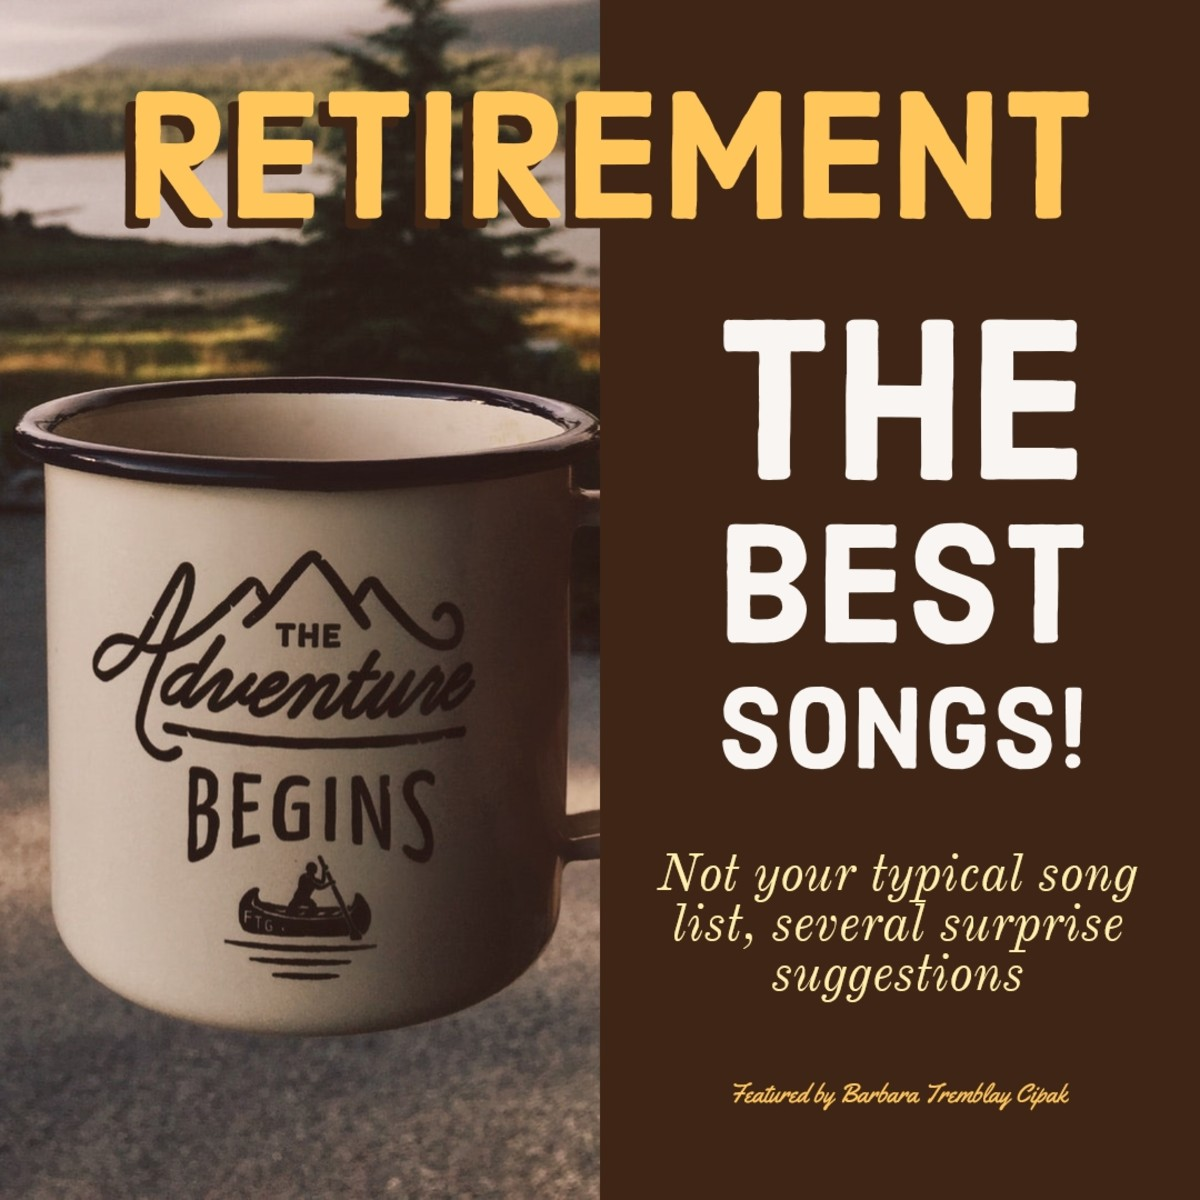 The best songs for retirement. Not your typical song choices. Add these to your retirement playlist.